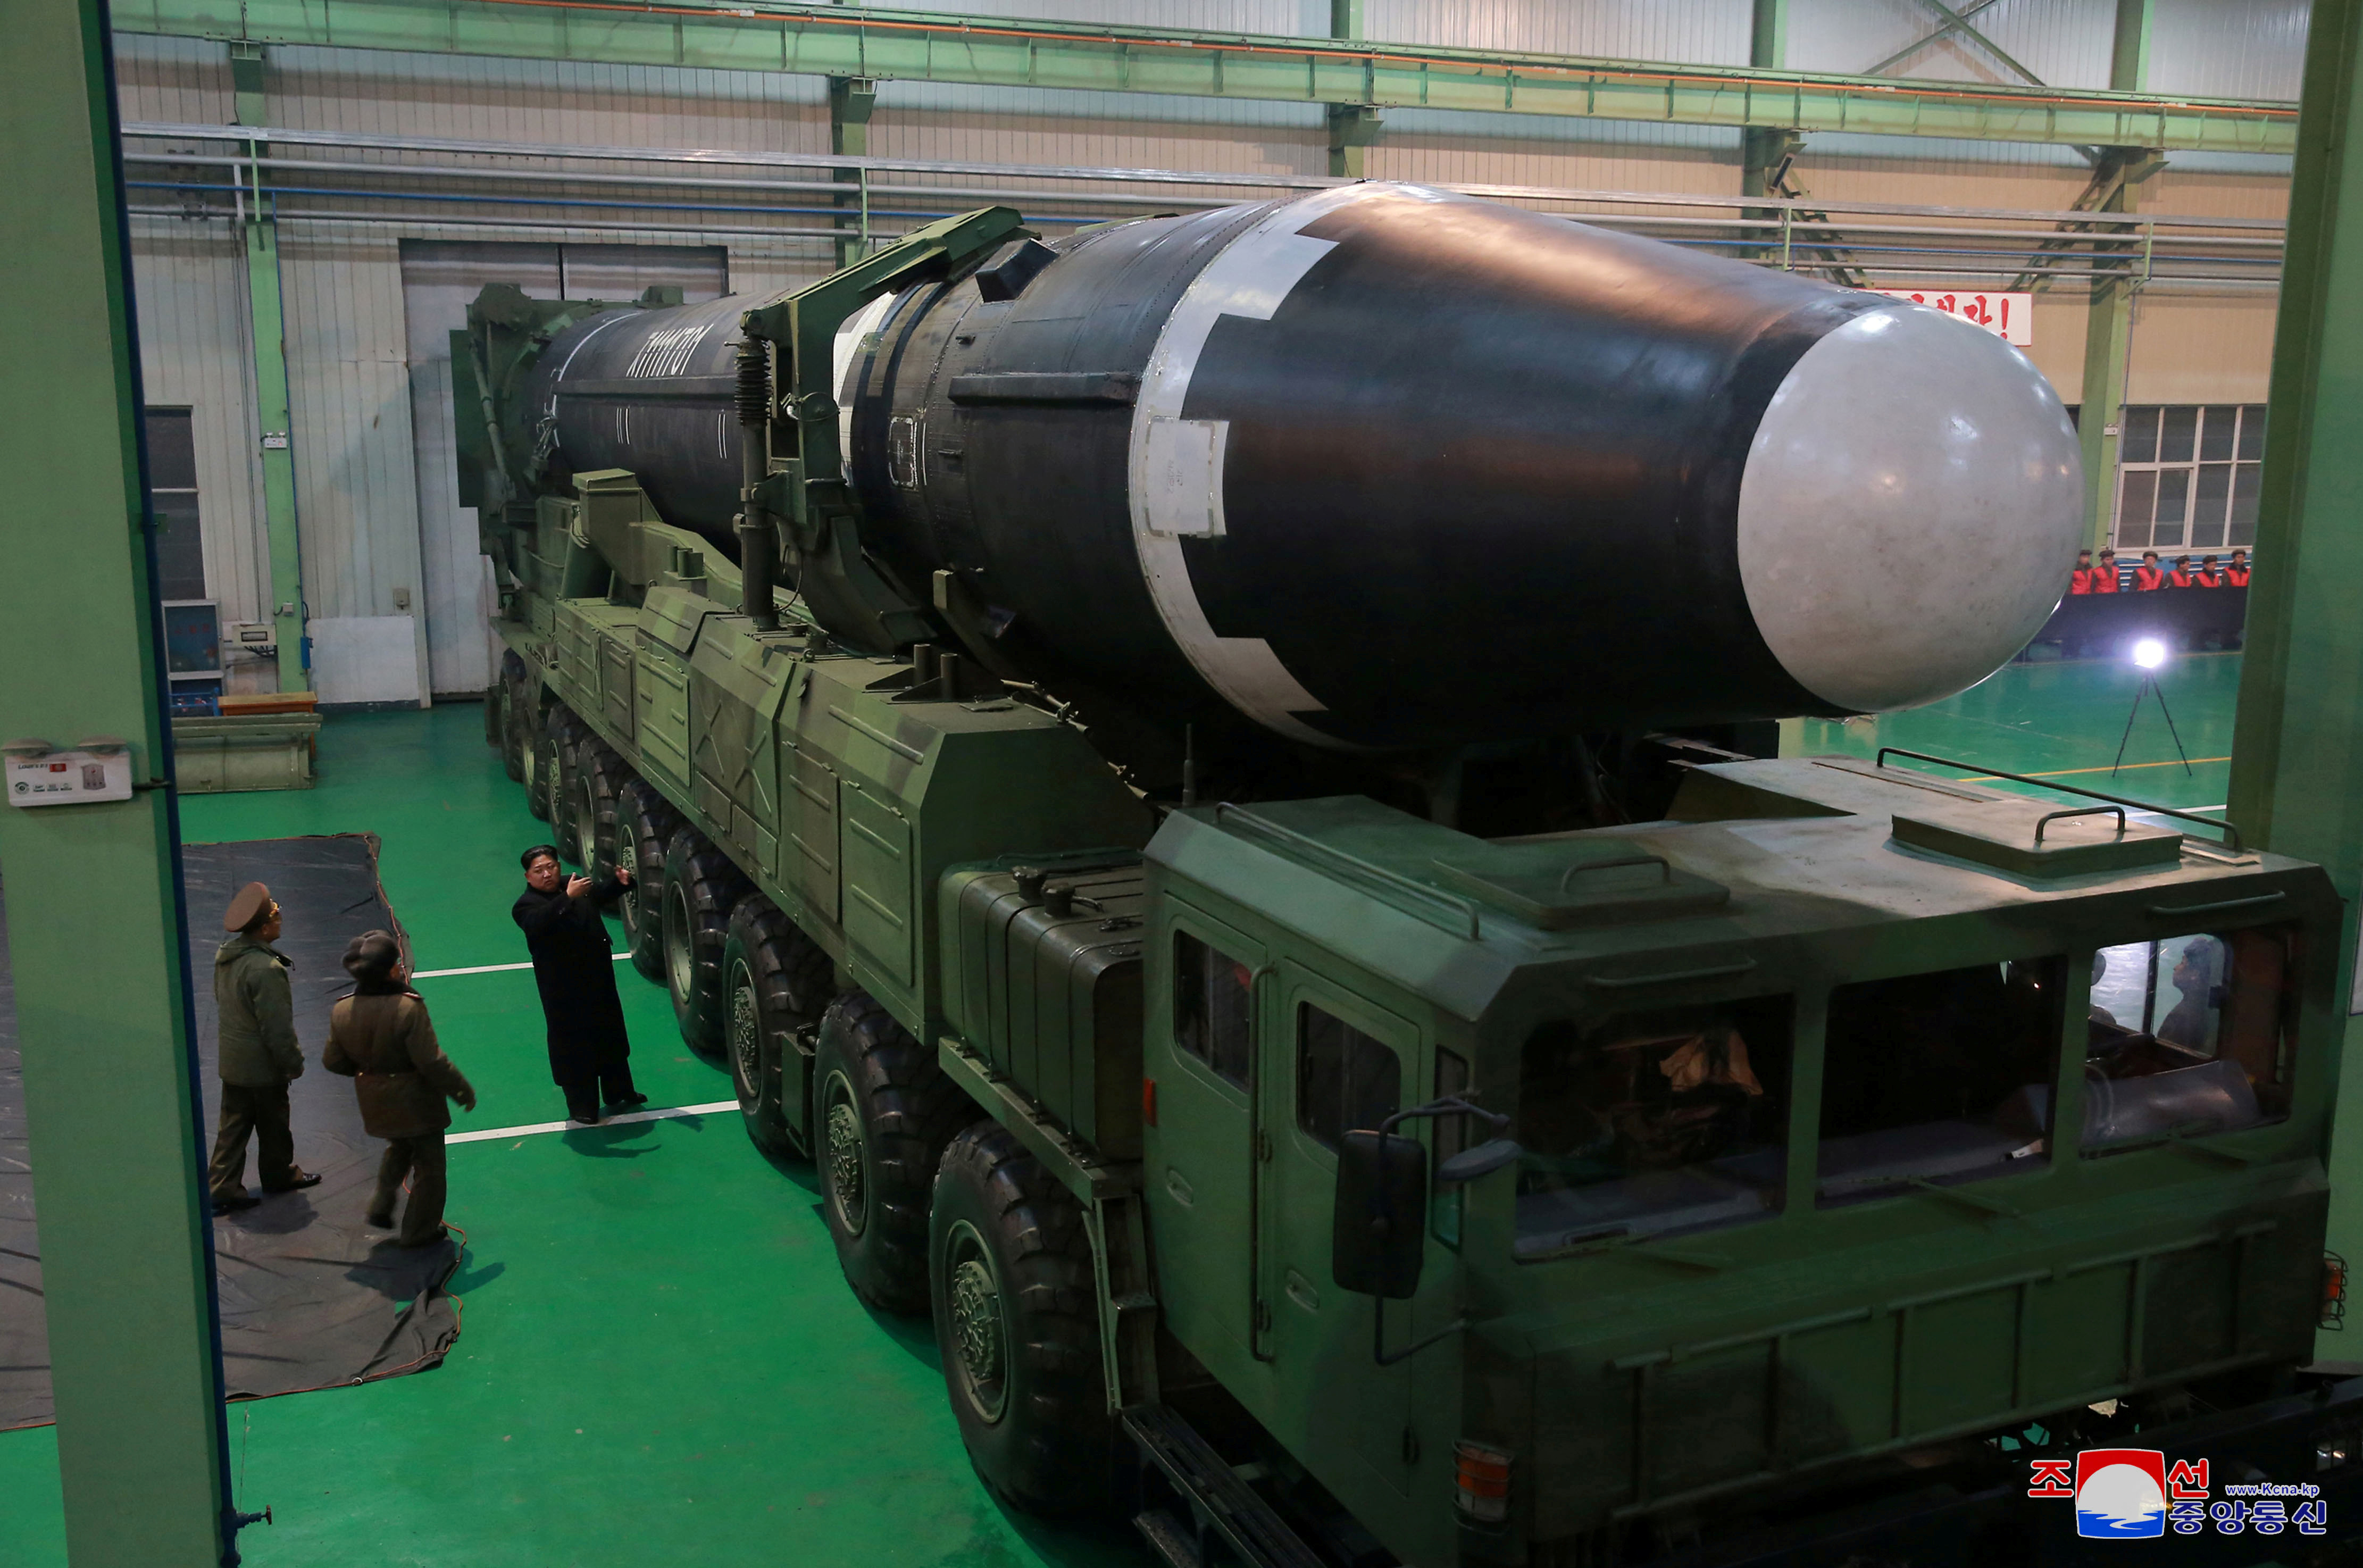 North Korea's leader Kim Jong Un is seen as the newly developed intercontinental ballistic rocket Hwasong-15's test was successfully launched, in this undated photo released by North Korea's Korean Central News Agency (KCNA) in Pyongyang November 30, 2017. REUTERS/KCNA ATTENTION EDITORS - THIS IMAGE WAS PROVIDED BY A THIRD PARTY. REUTERS IS UNABLE TO INDEPENDENTLY VERIFY THIS IMAGE. SOUTH KOREA OUT. NO THIRD PARTY SALES. NOT FOR USE BY REUTERS THIRD PARTY DISTRIBUTORS     TPX IMAGES OF THE DAY - RC1D9D9D59A0